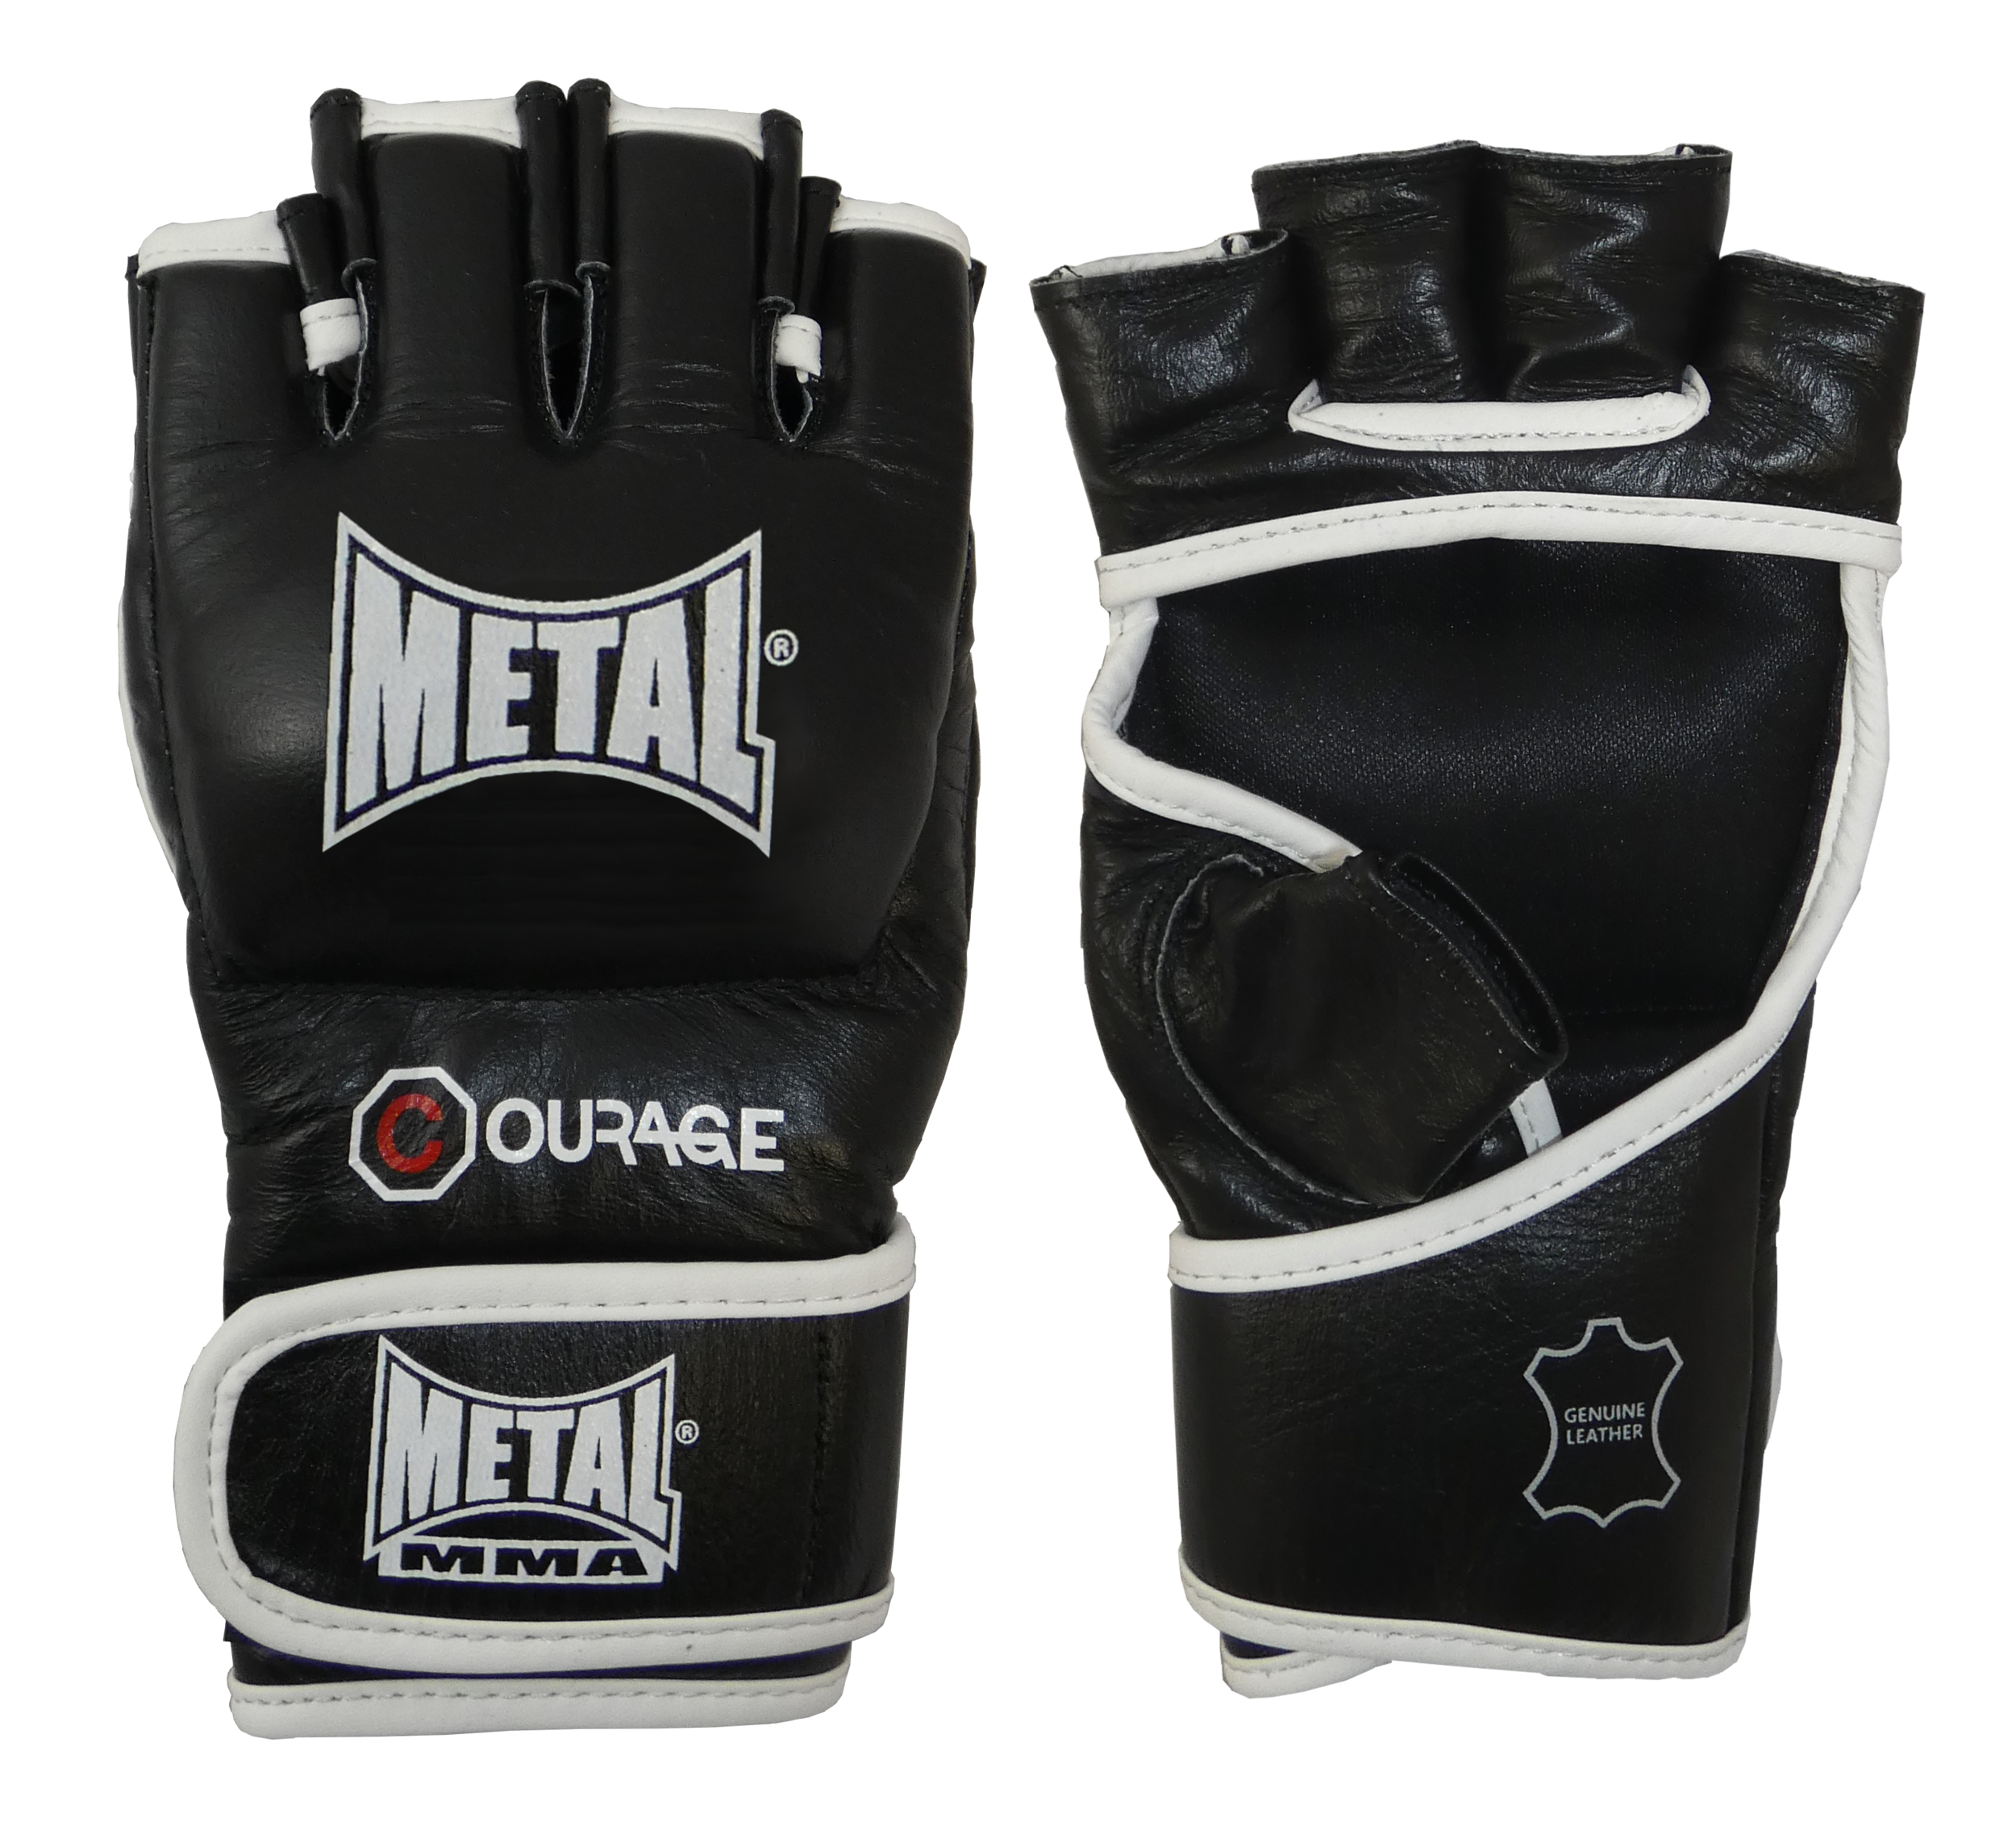 gants-de-mma-en-cuir-metal-boxe-courage-GRGAN310N